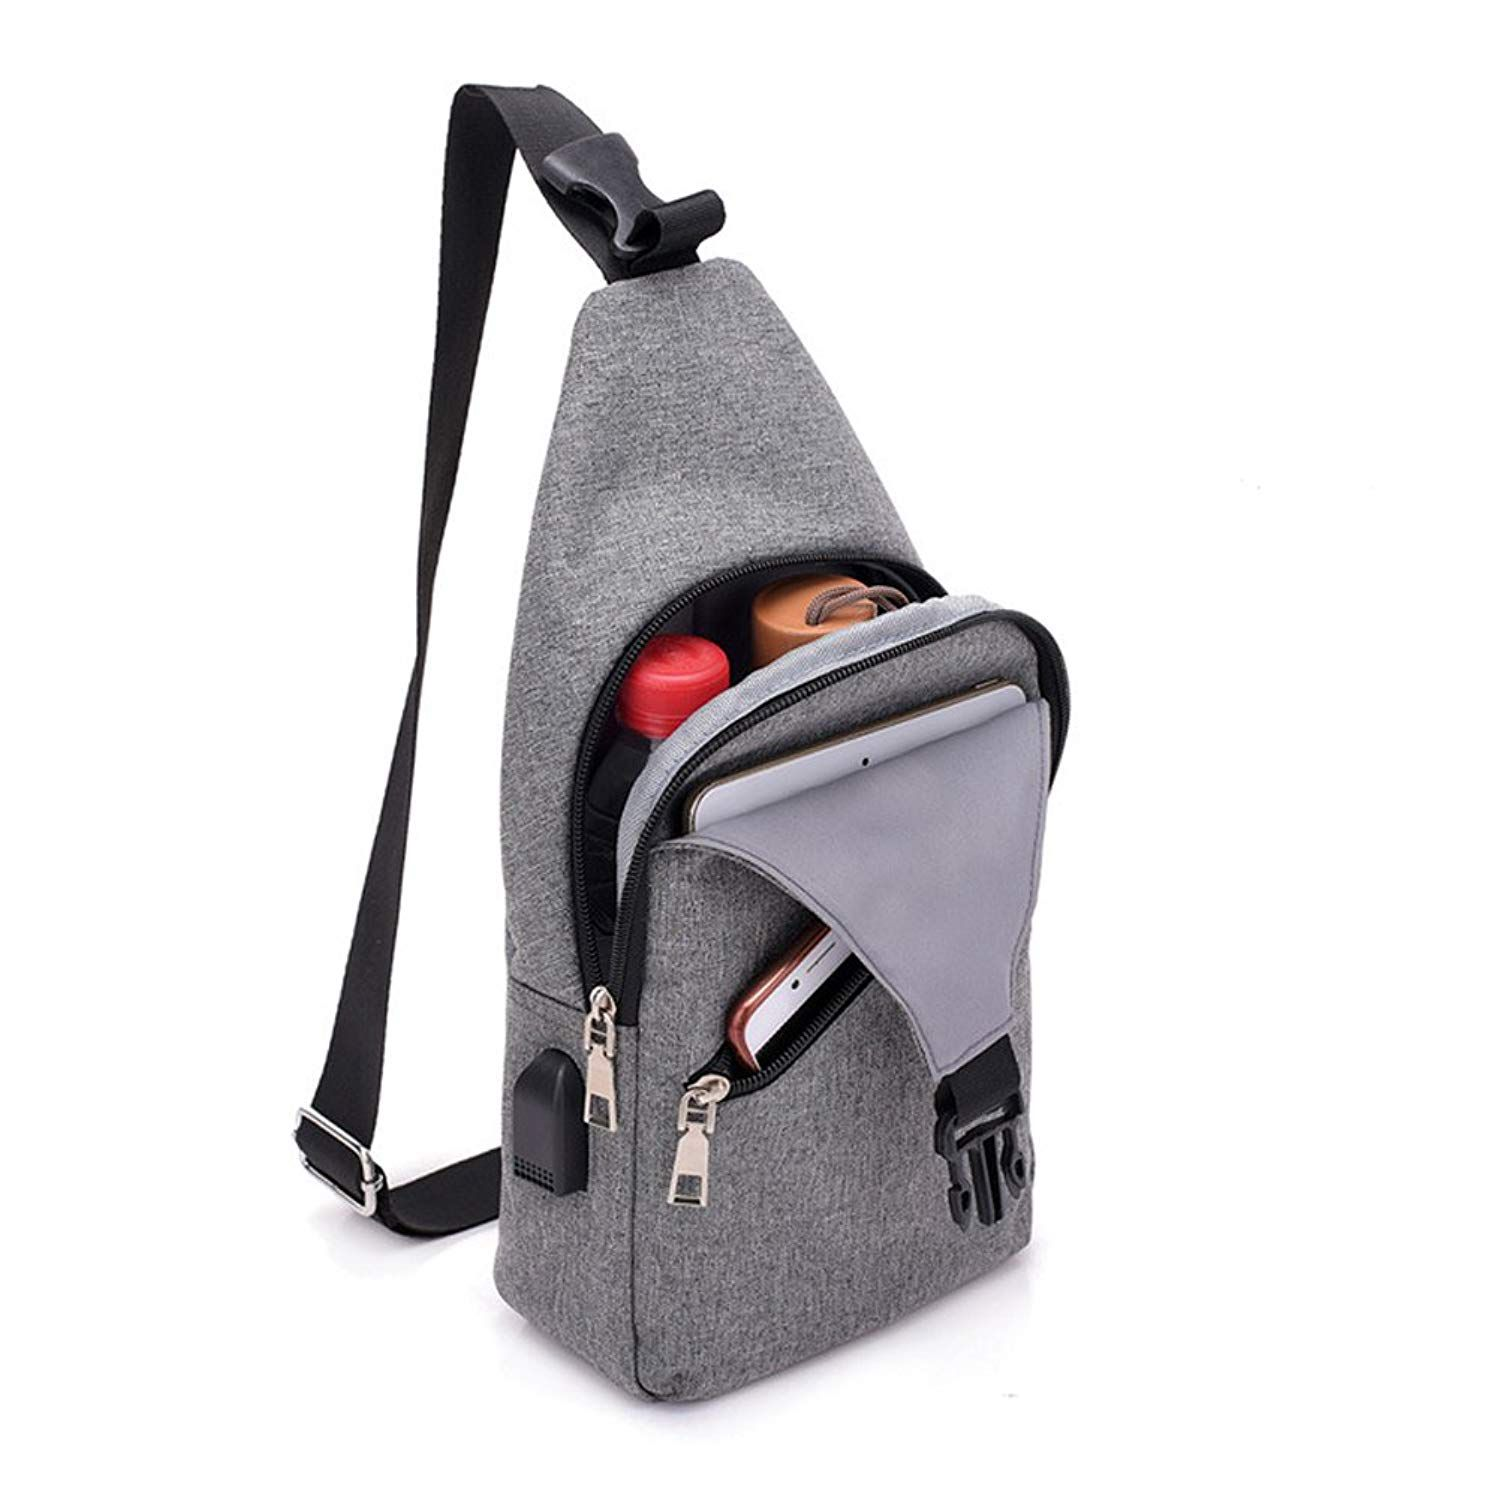 Sling Bag with USB Charging Port   Headphone Hole Smart Crossbody Bag  College School Chest Casual Daypack Travel Shoulder-in Top-Handle Bags from  Luggage ... 54acae52b70b6